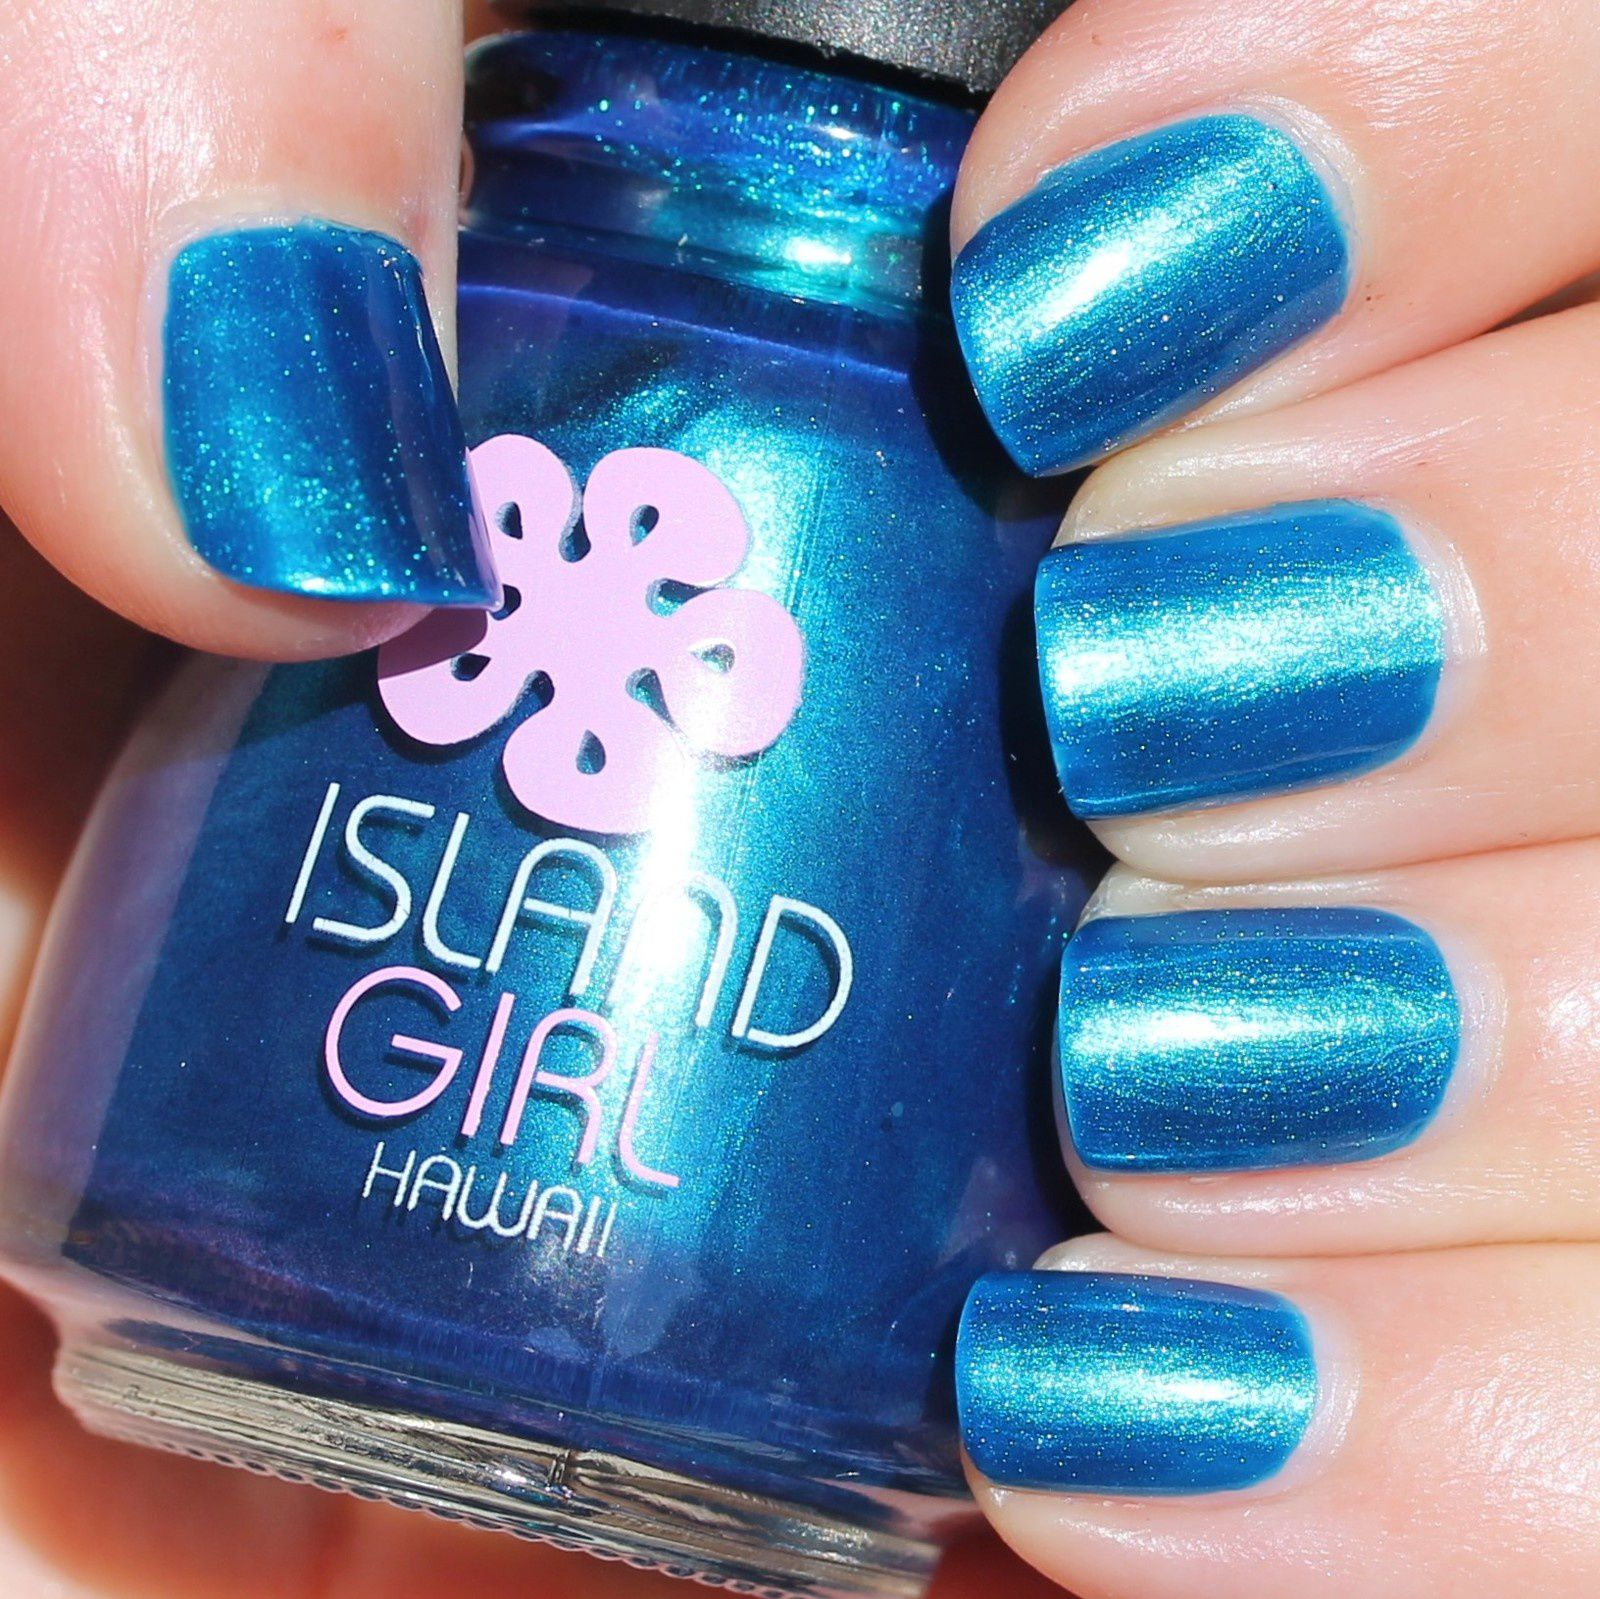 Essie Fill The Gap Base Coat / Island Girl Kona Coast / HK Girl Top Coat